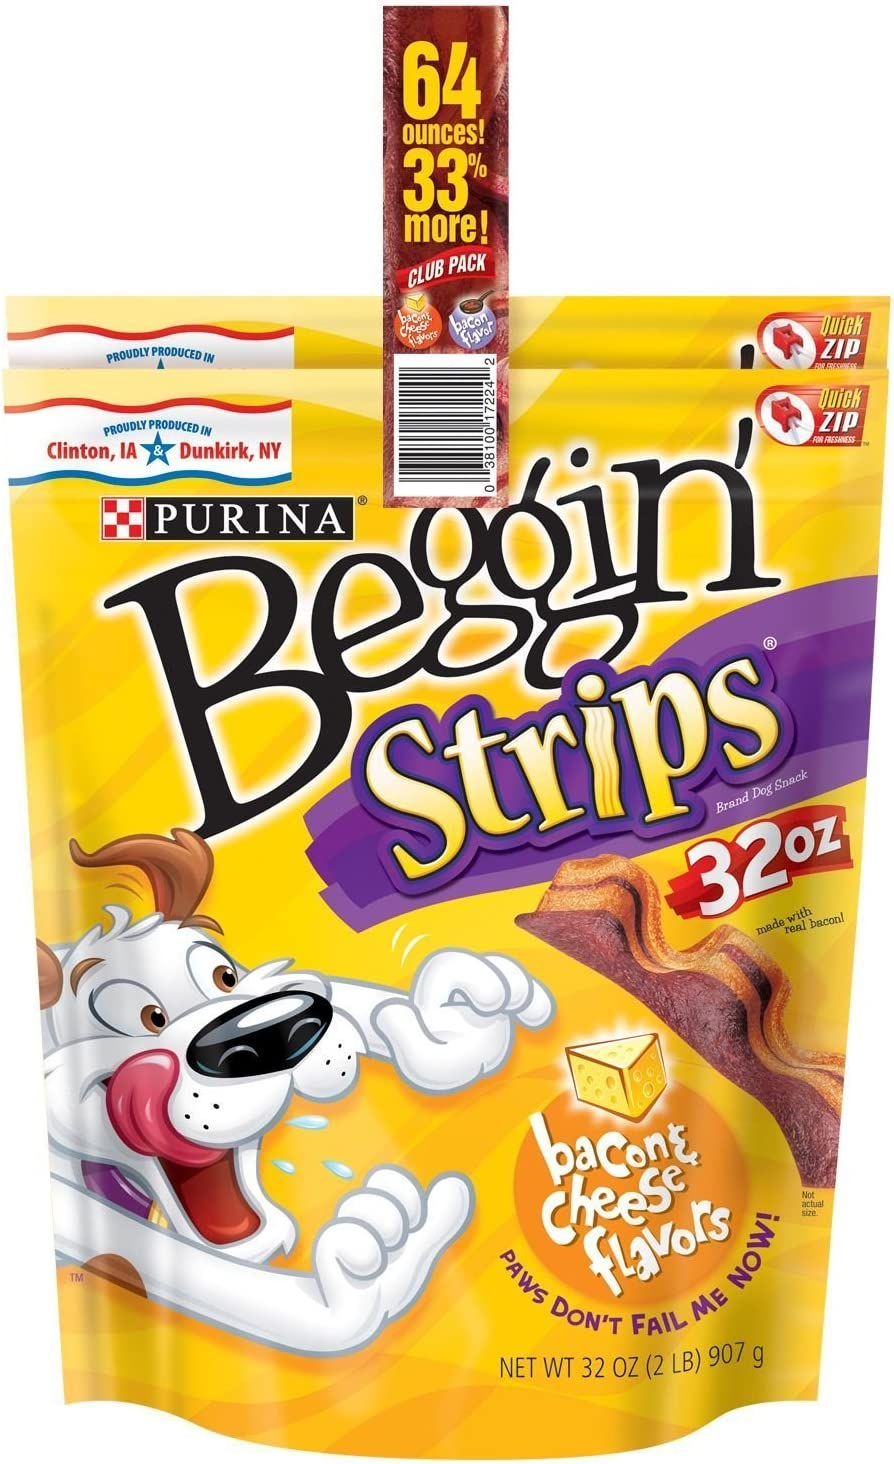 Beggin Strips Dog Treats By Purina Bundle of 2 Lg. Bags 1 Bacon 1 Bacon and Cheese 2 lbs. Each